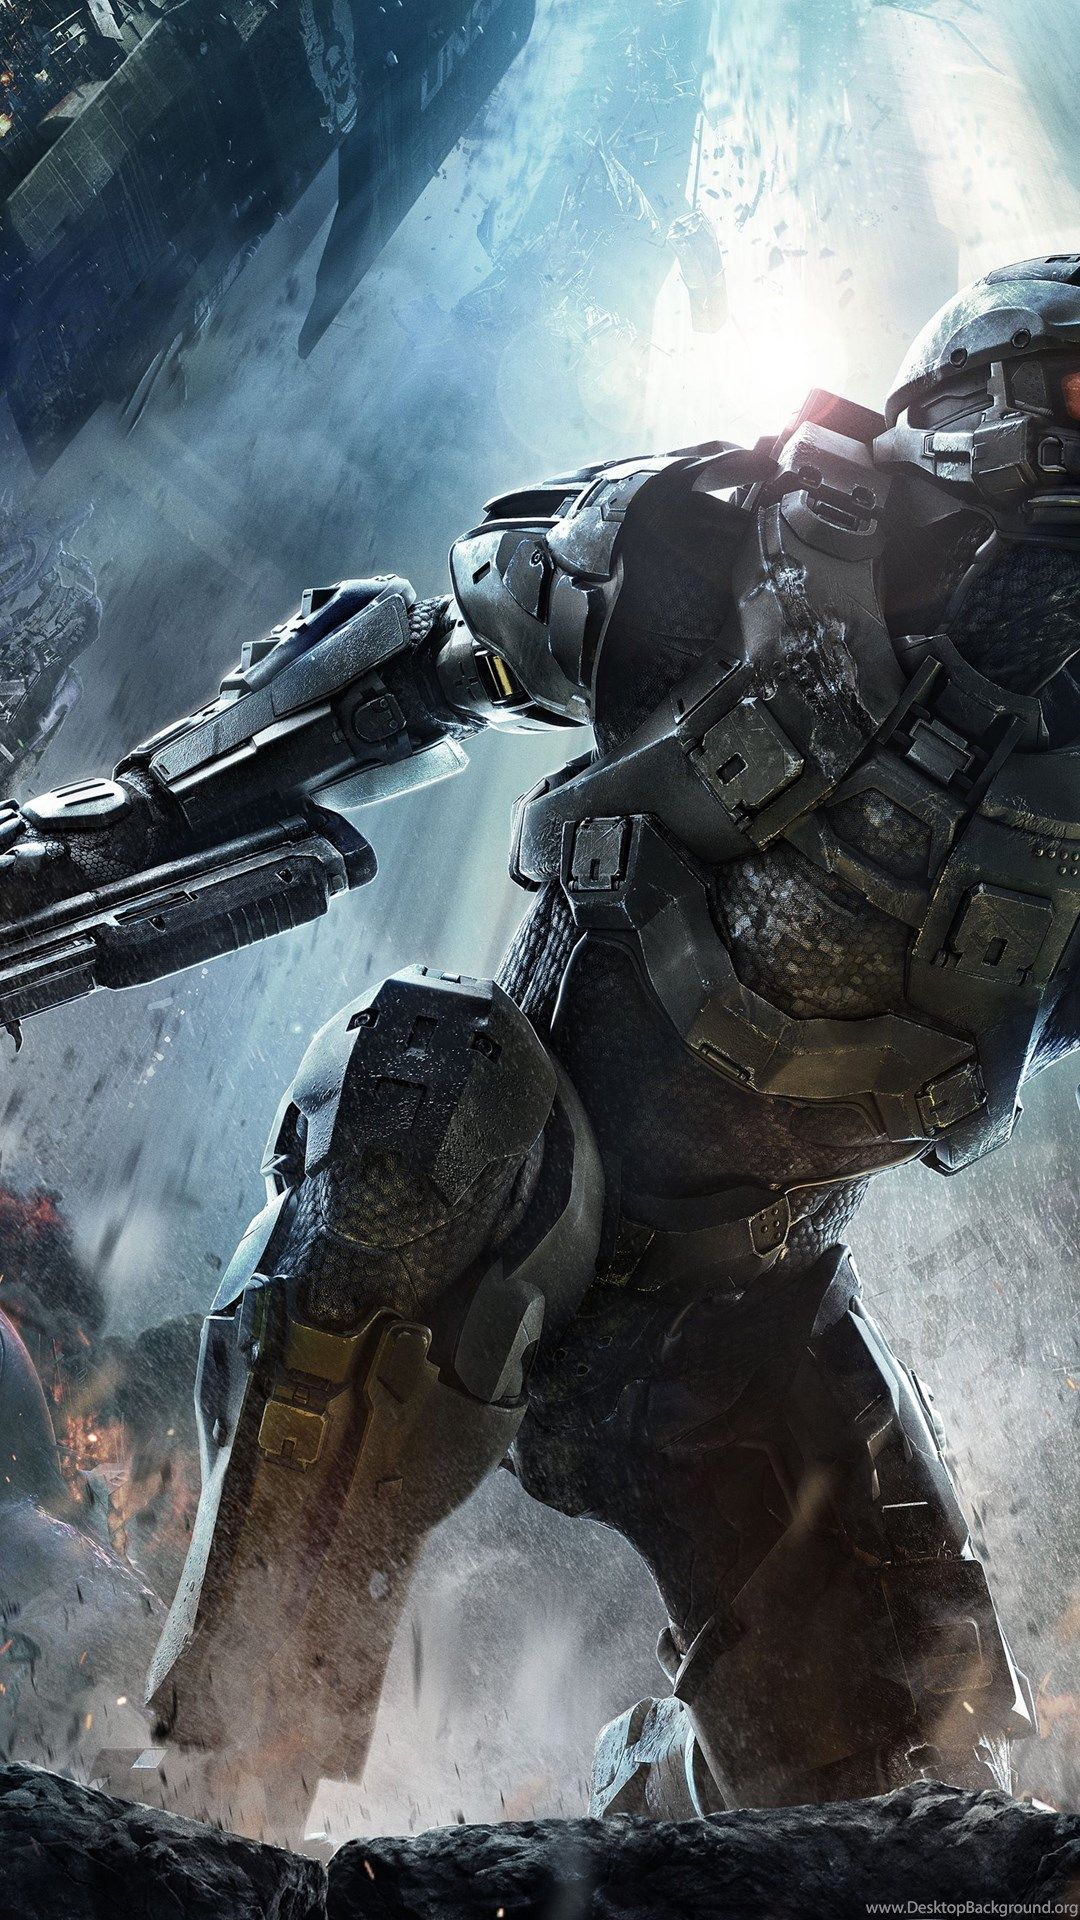 Halo 4k Ultra Hd Wallpapers Free Hd Wallpapers Download Halo 4k Ultra Wallpapers Iphone B In 2020 Background Pictures Master Chief Free Android Wallpaper